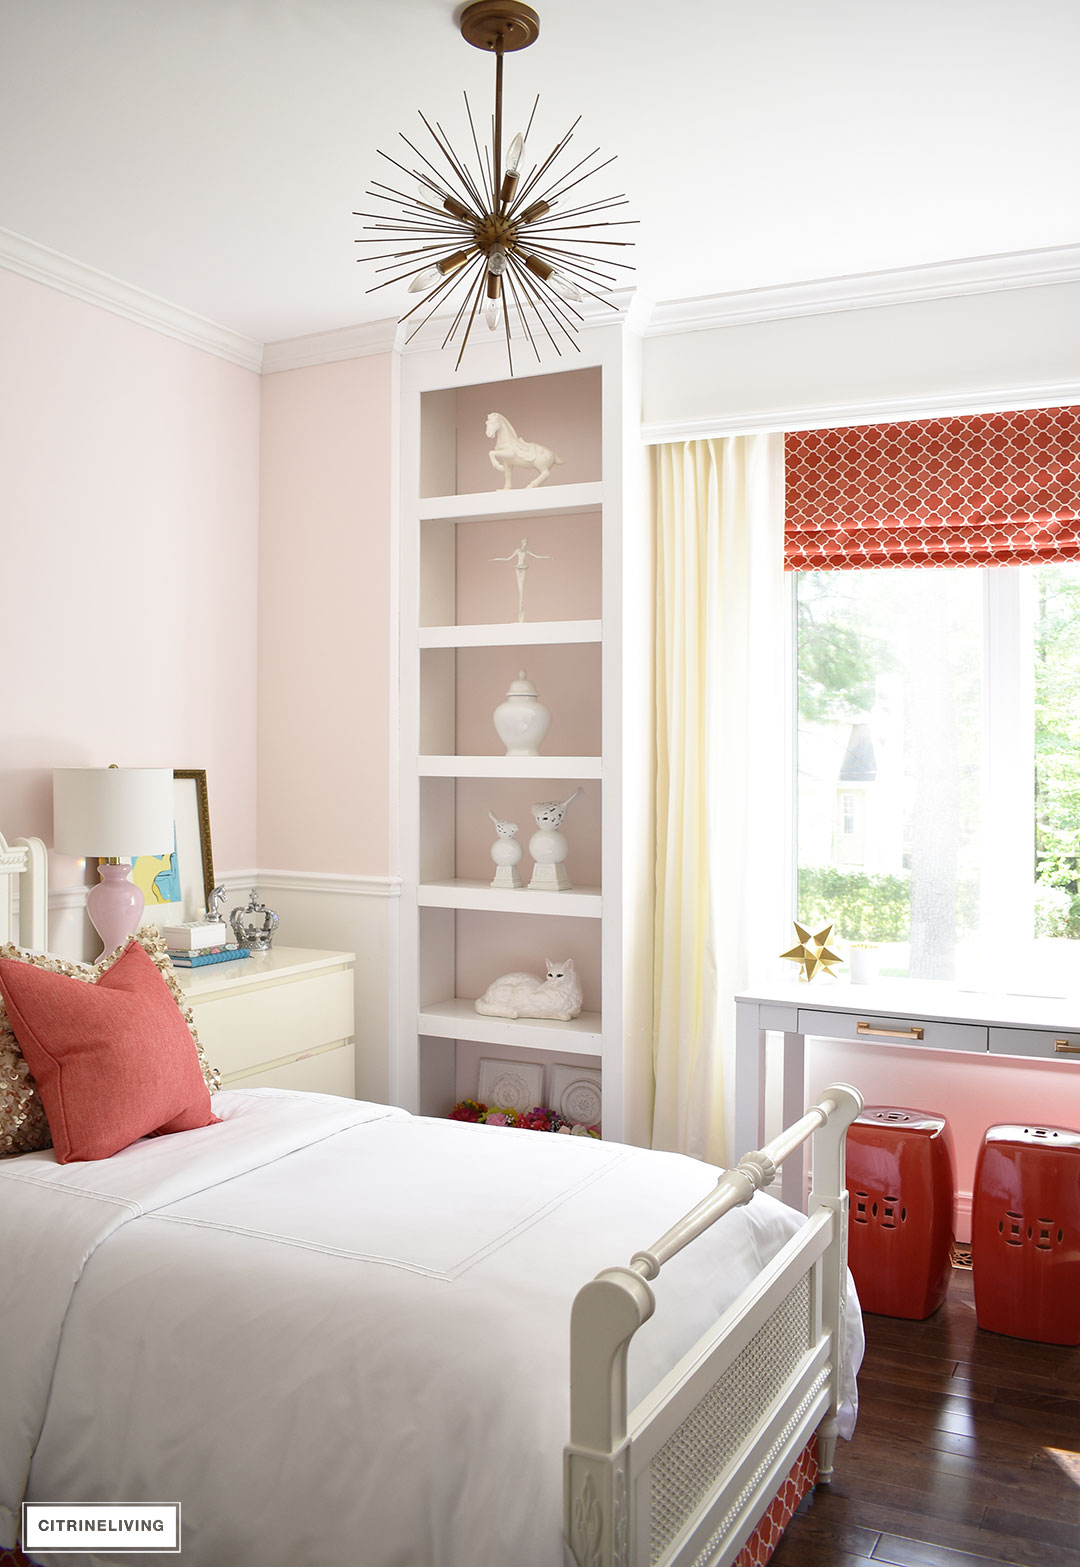 A chic, modern girl's bedroom featuring blush pink walls, coral and brass accessories and brass lighting, is a fun and sophisticated look!